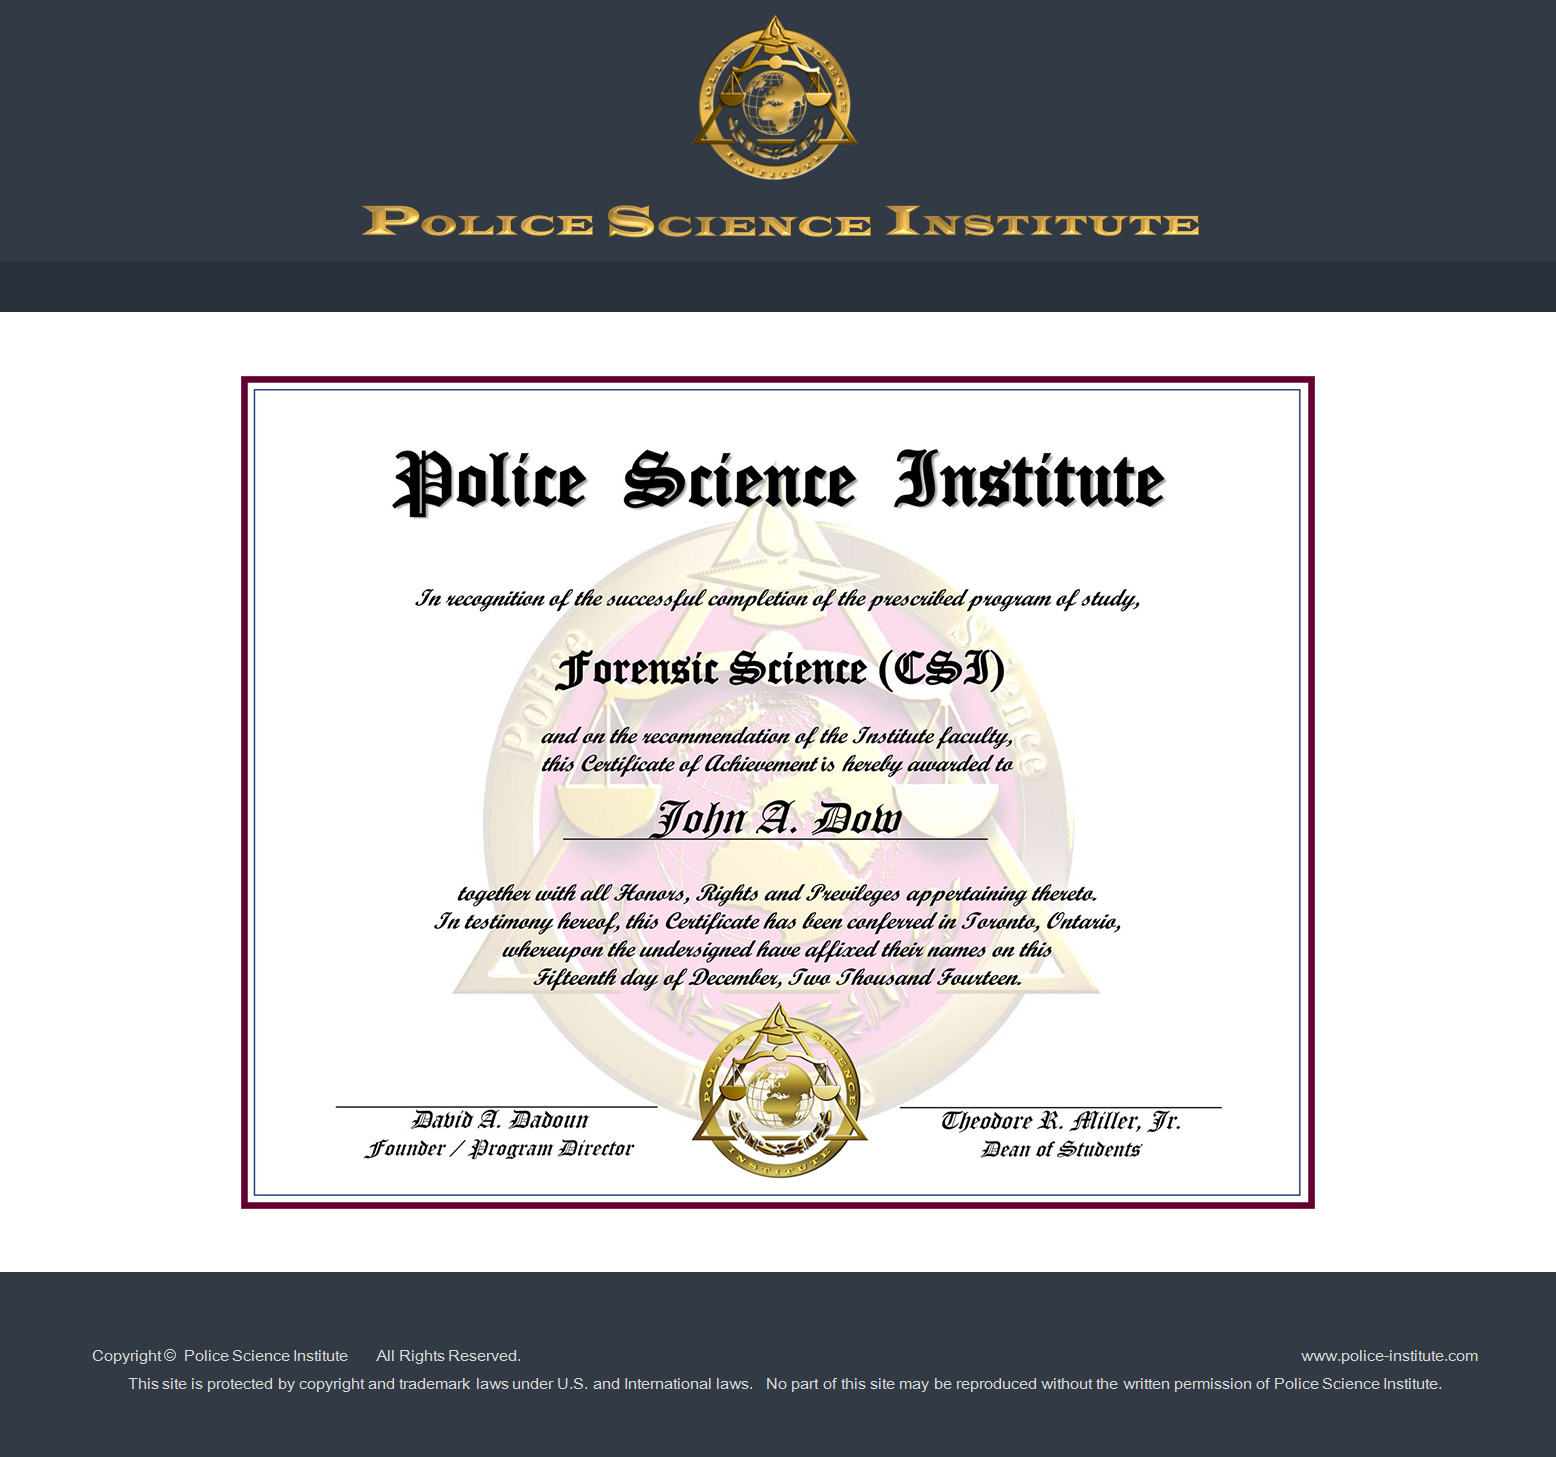 Forensic Science Course At Police Science Institute